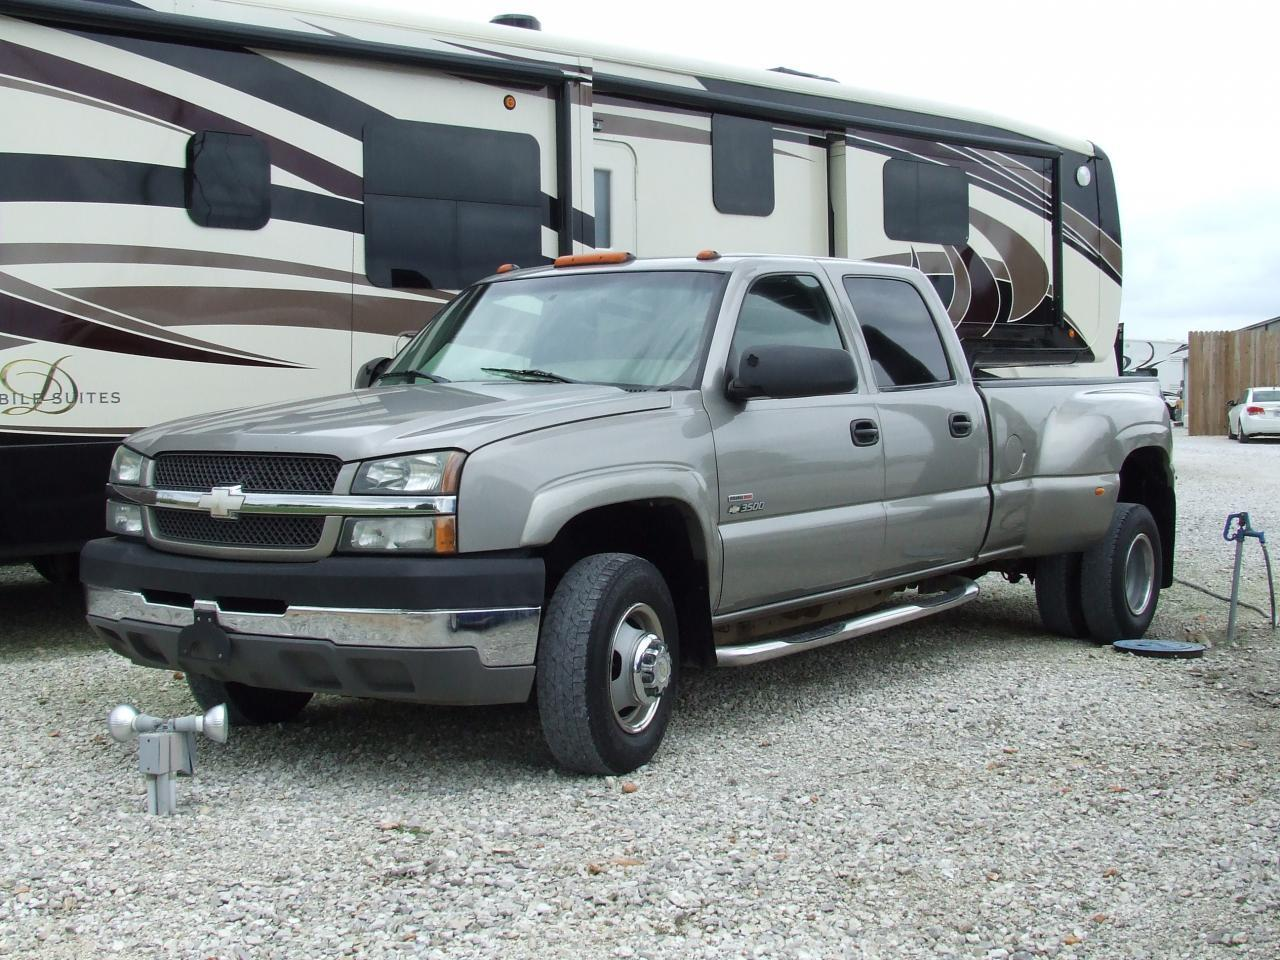 2003 chevrolet silverado 3500 for sale. Black Bedroom Furniture Sets. Home Design Ideas